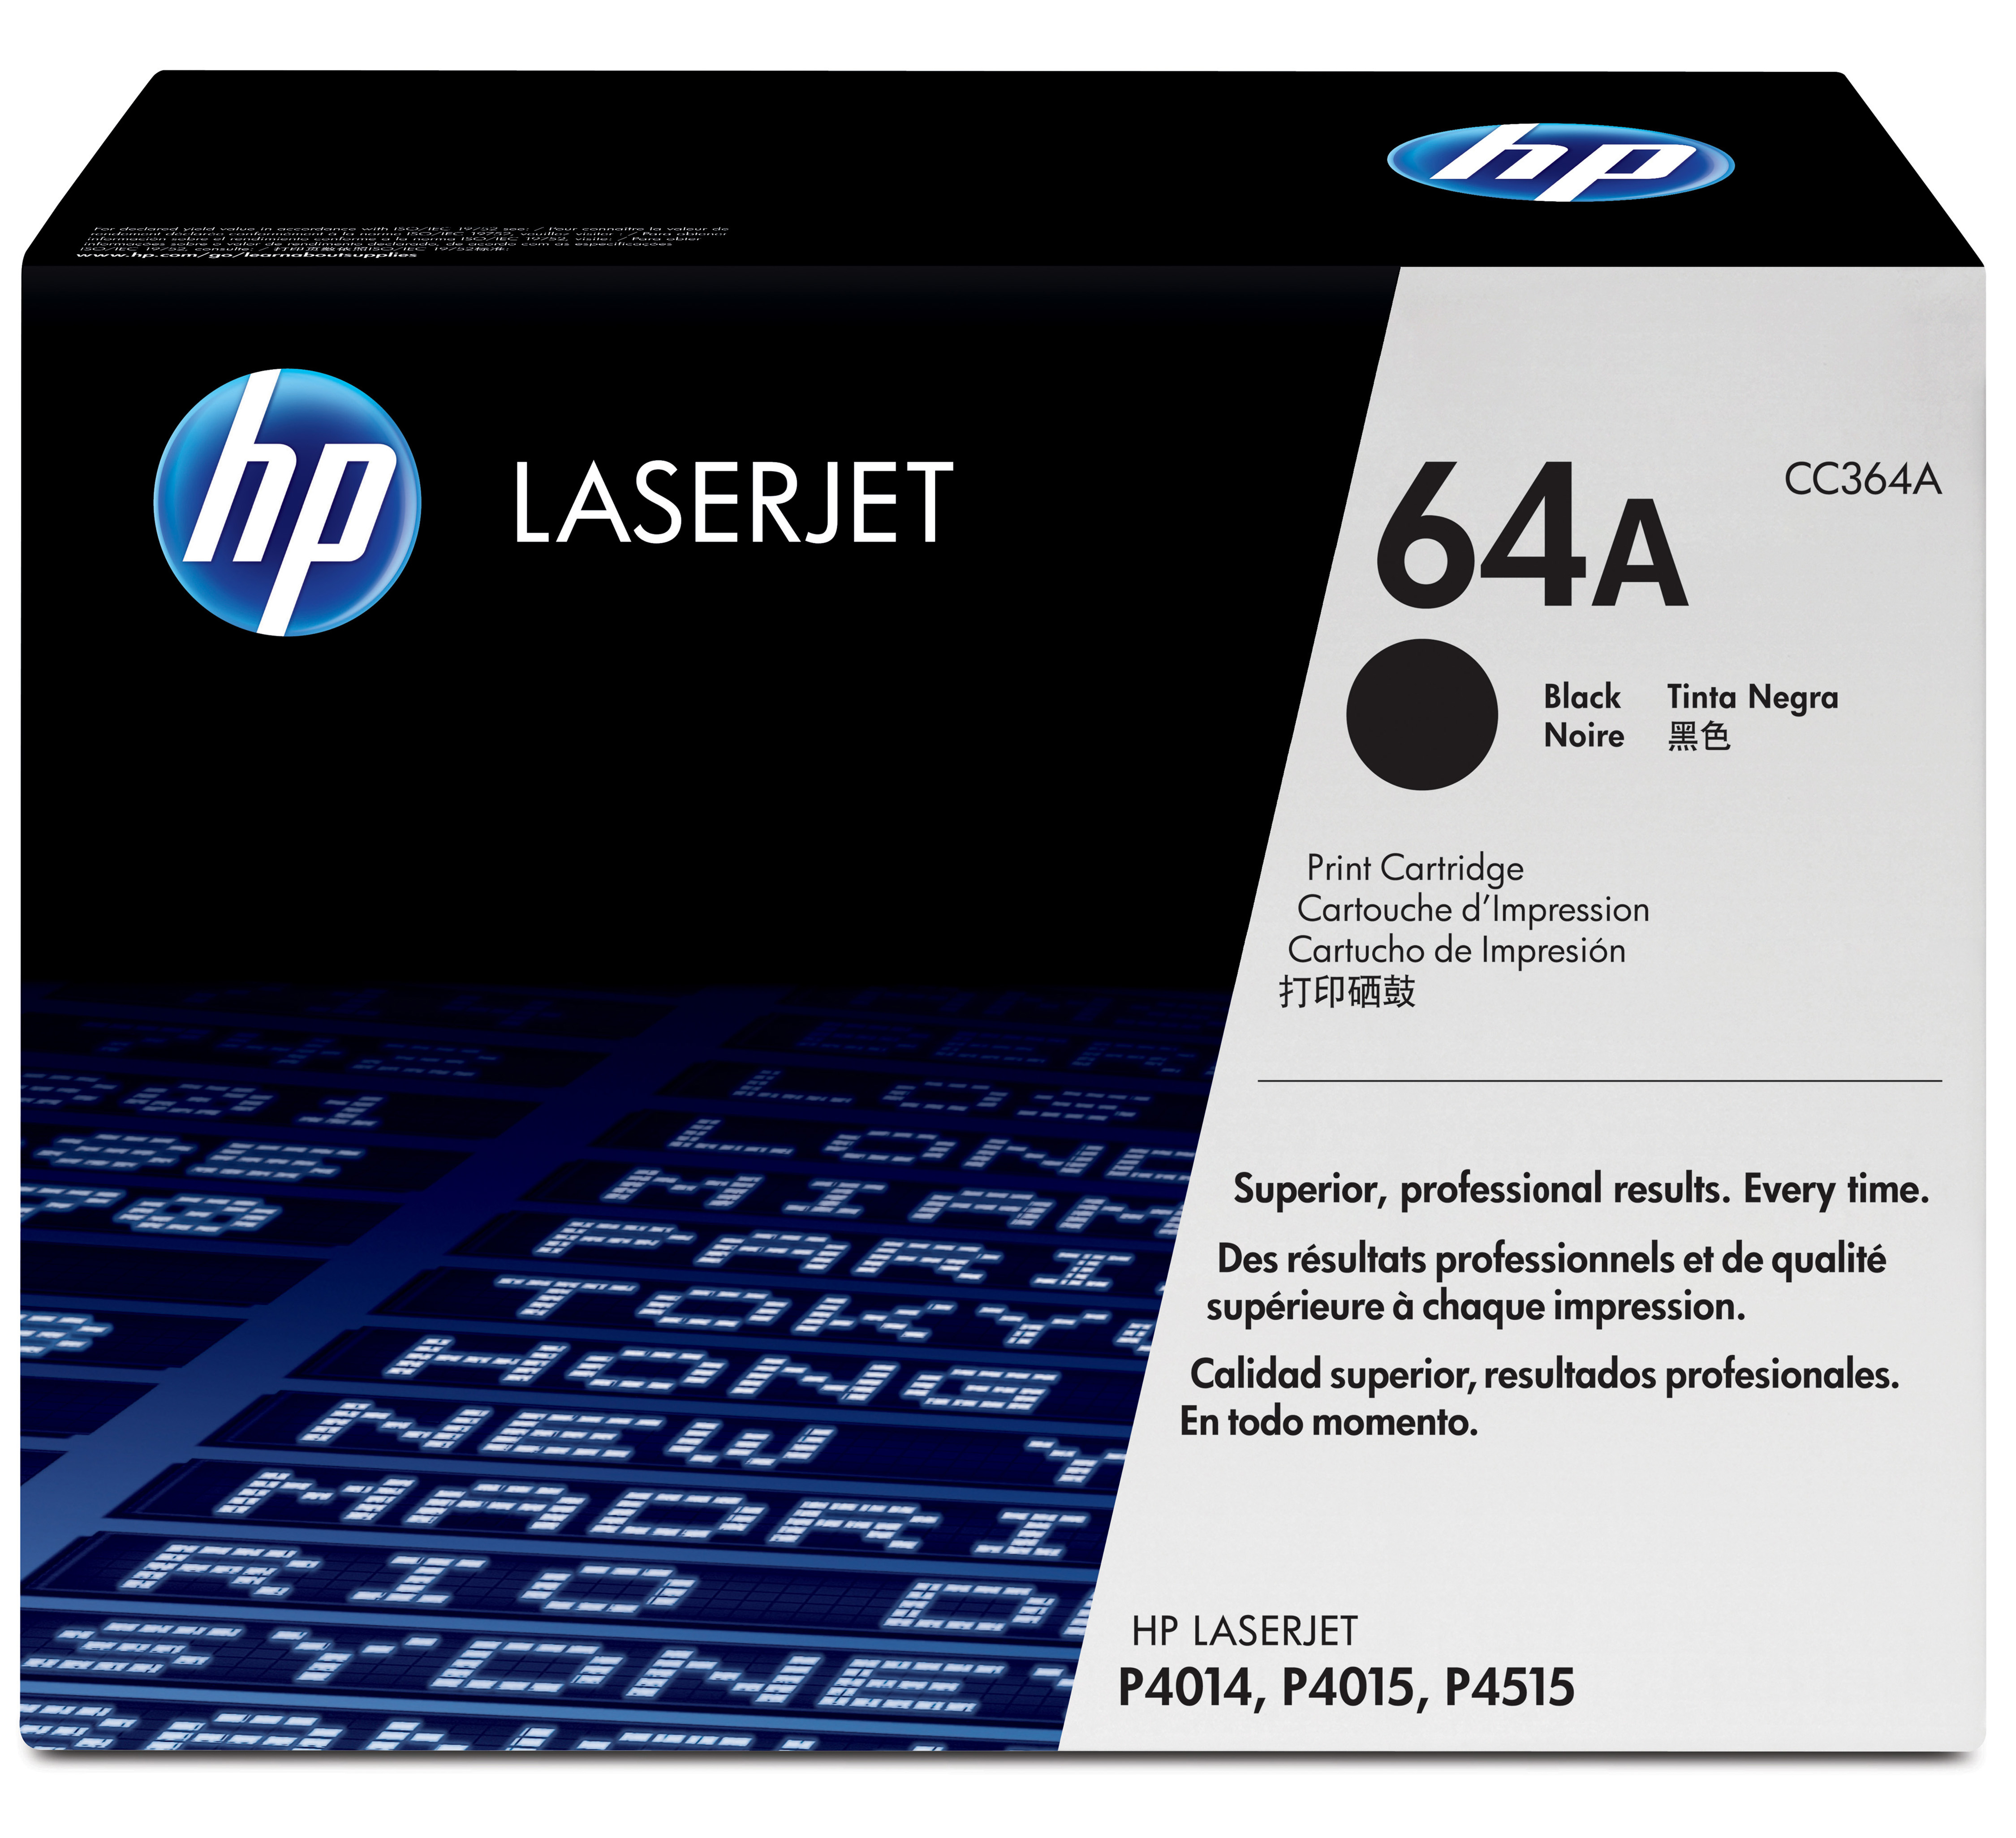 Remanufactured HP CC364A Toner Cartridge Black 10k CC364A - rem01